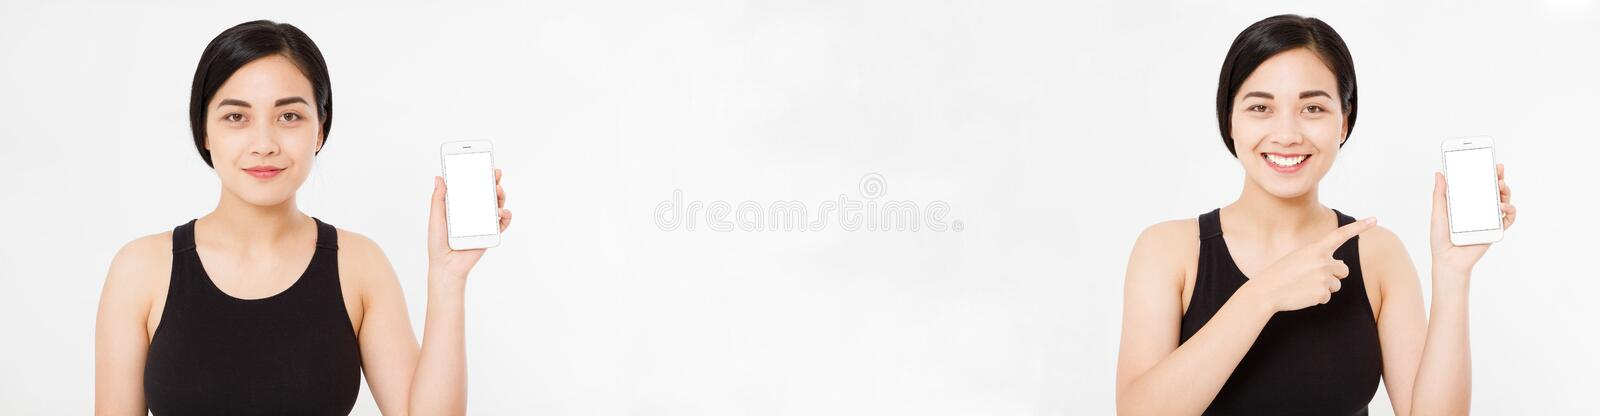 Collage of smiling asian, korean woman, girl is pointing on smartphone standing on white background set. Design template. stock images